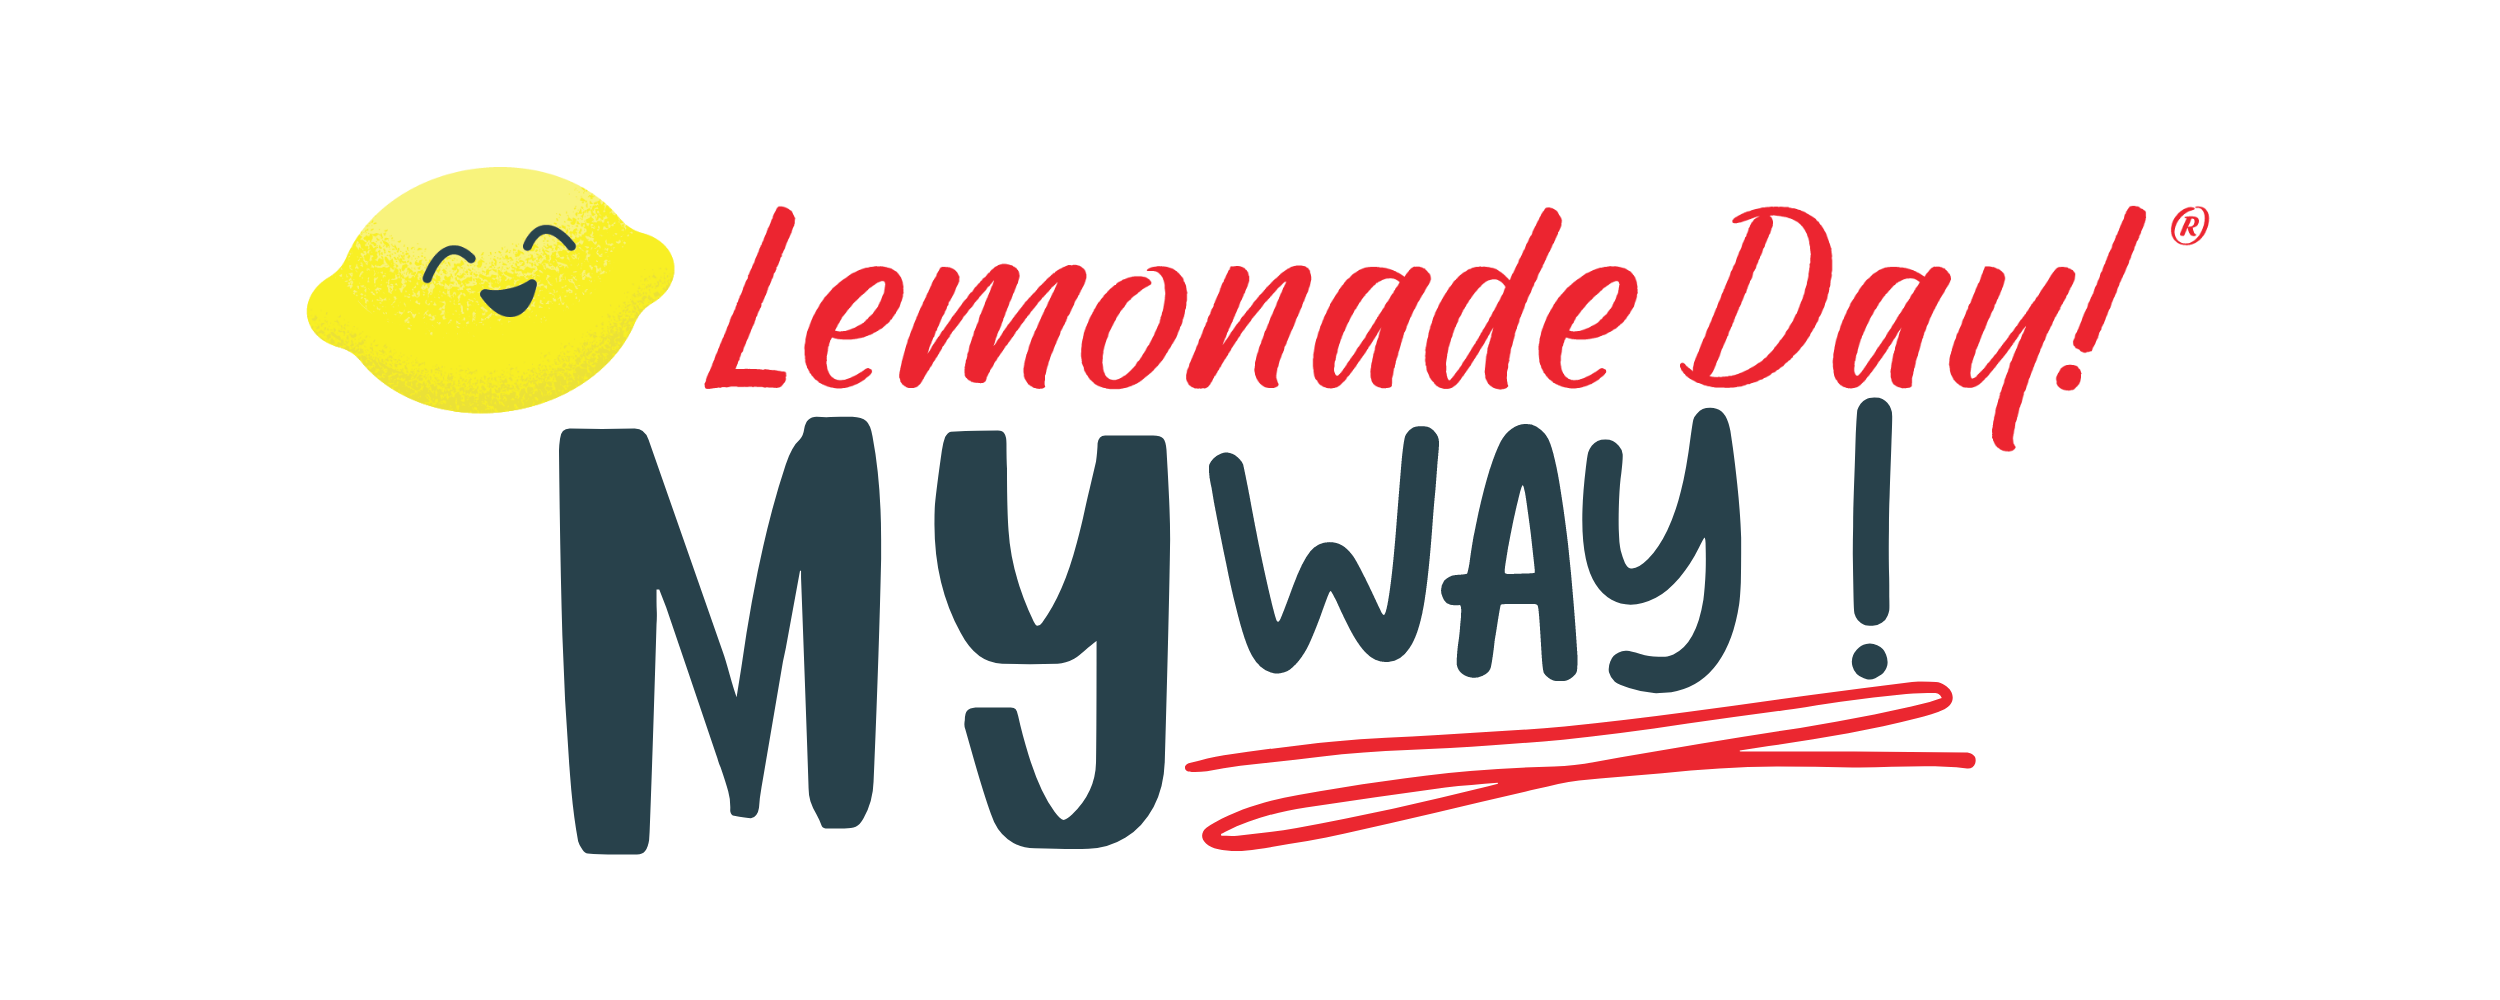 Lemonade Day My Way